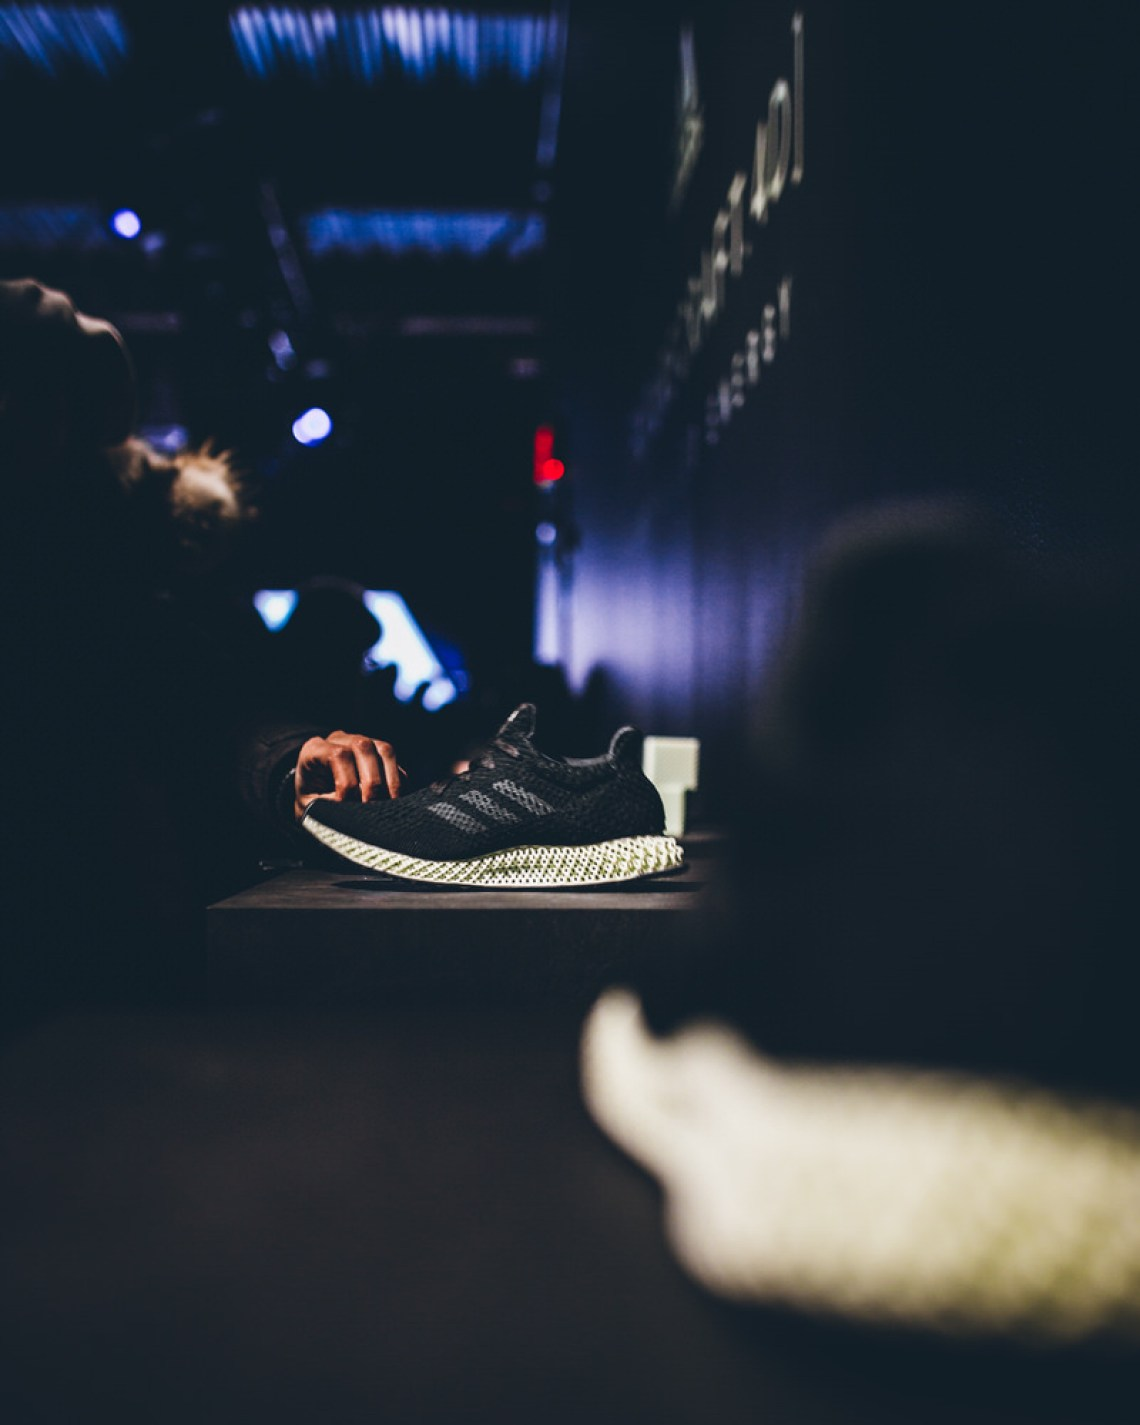 81105f97e Inside the adidas Futurecraft 4D NYC Launch Event